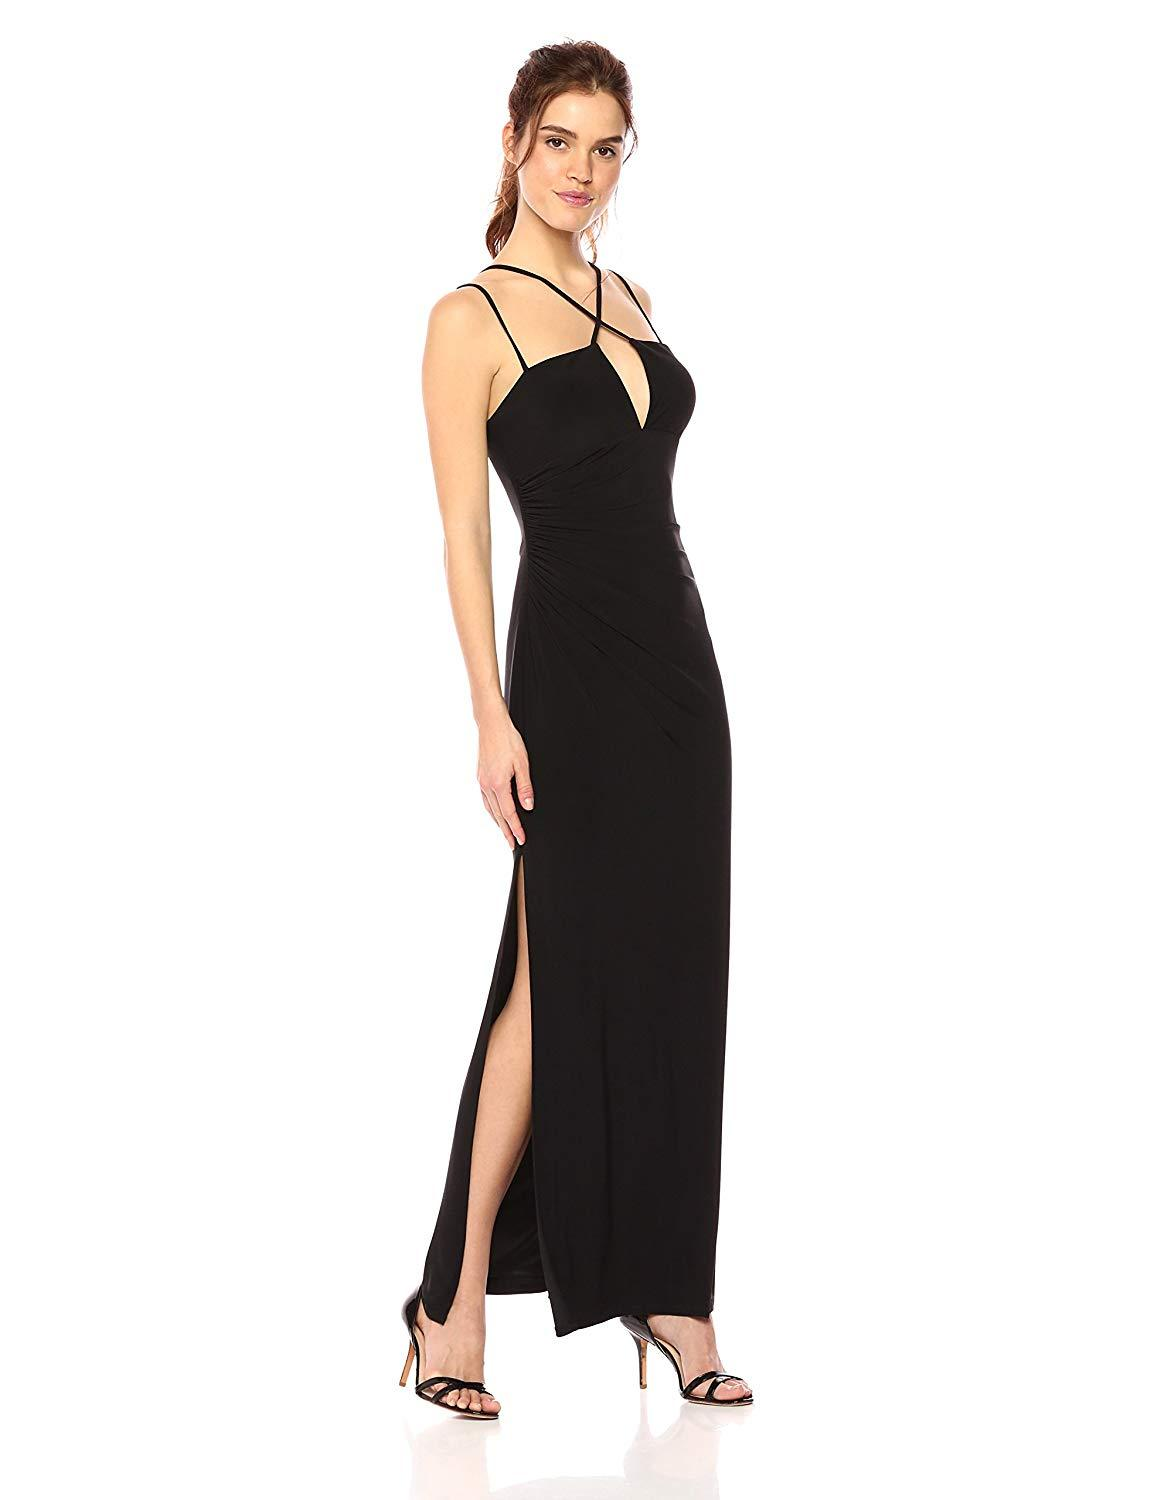 Laundry - 97R25440 Crisscross Front High Slit Jersey Gown In Black